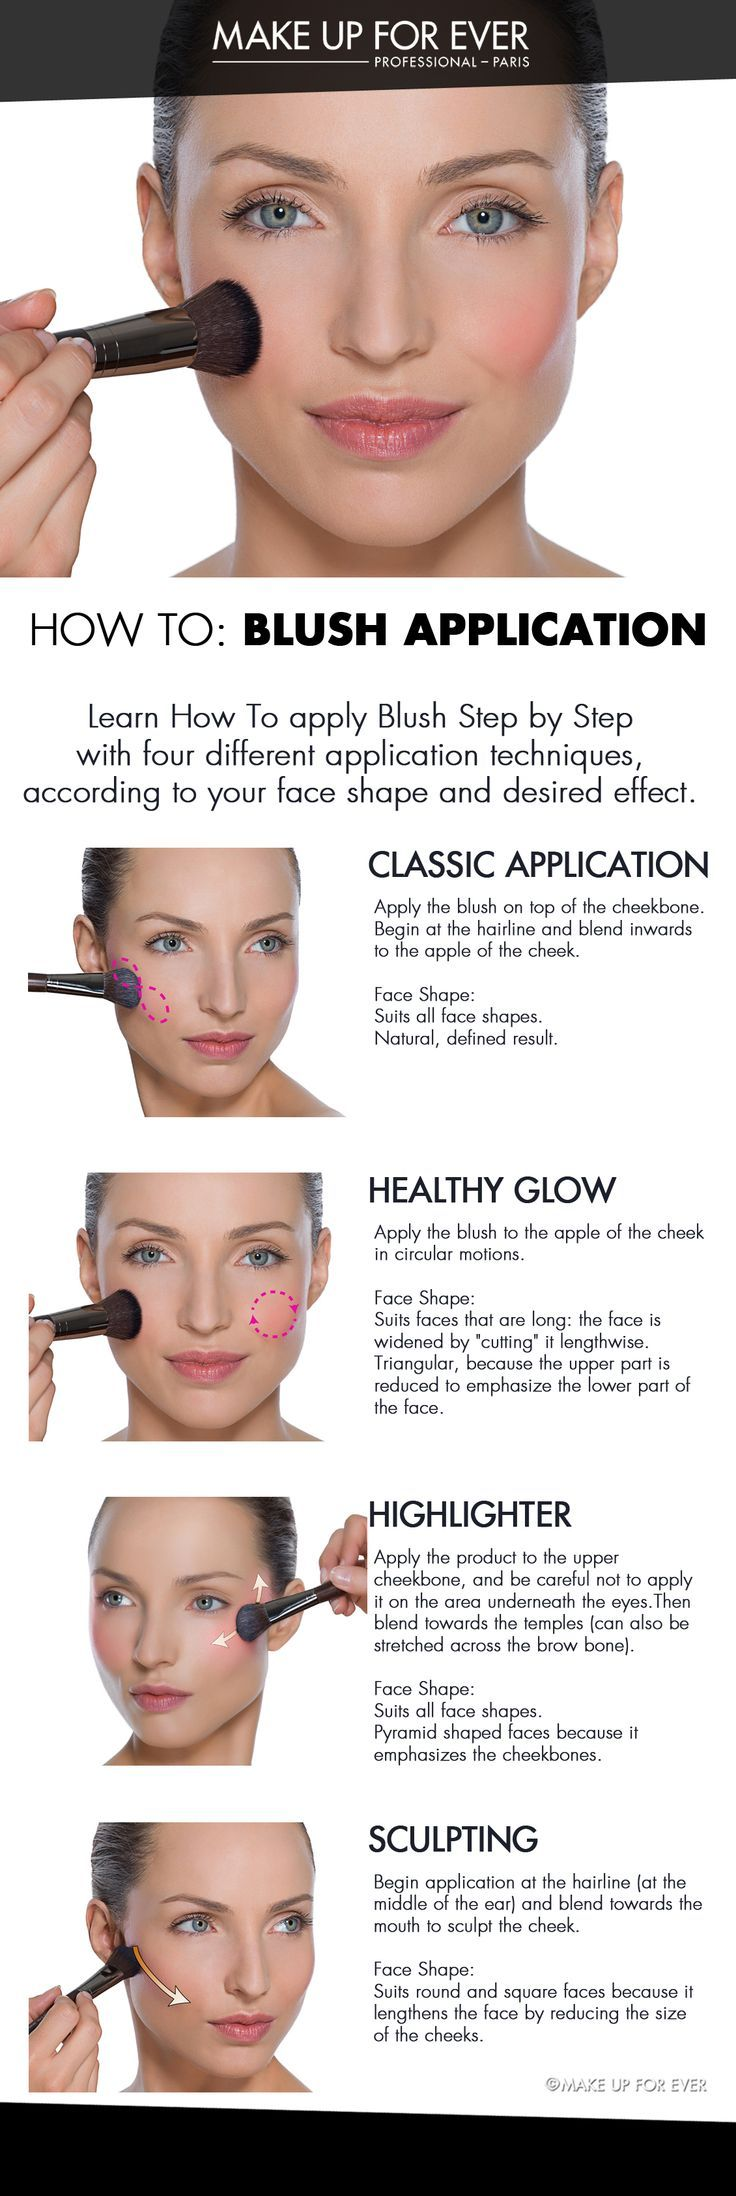 How To: Blush Application. Learn How To apply blush step by step with 4 different application techniques, according to your face shape and desired effect. #HowTo courtesy of #Makeupforever #Sephora #makeuptutorial #blush